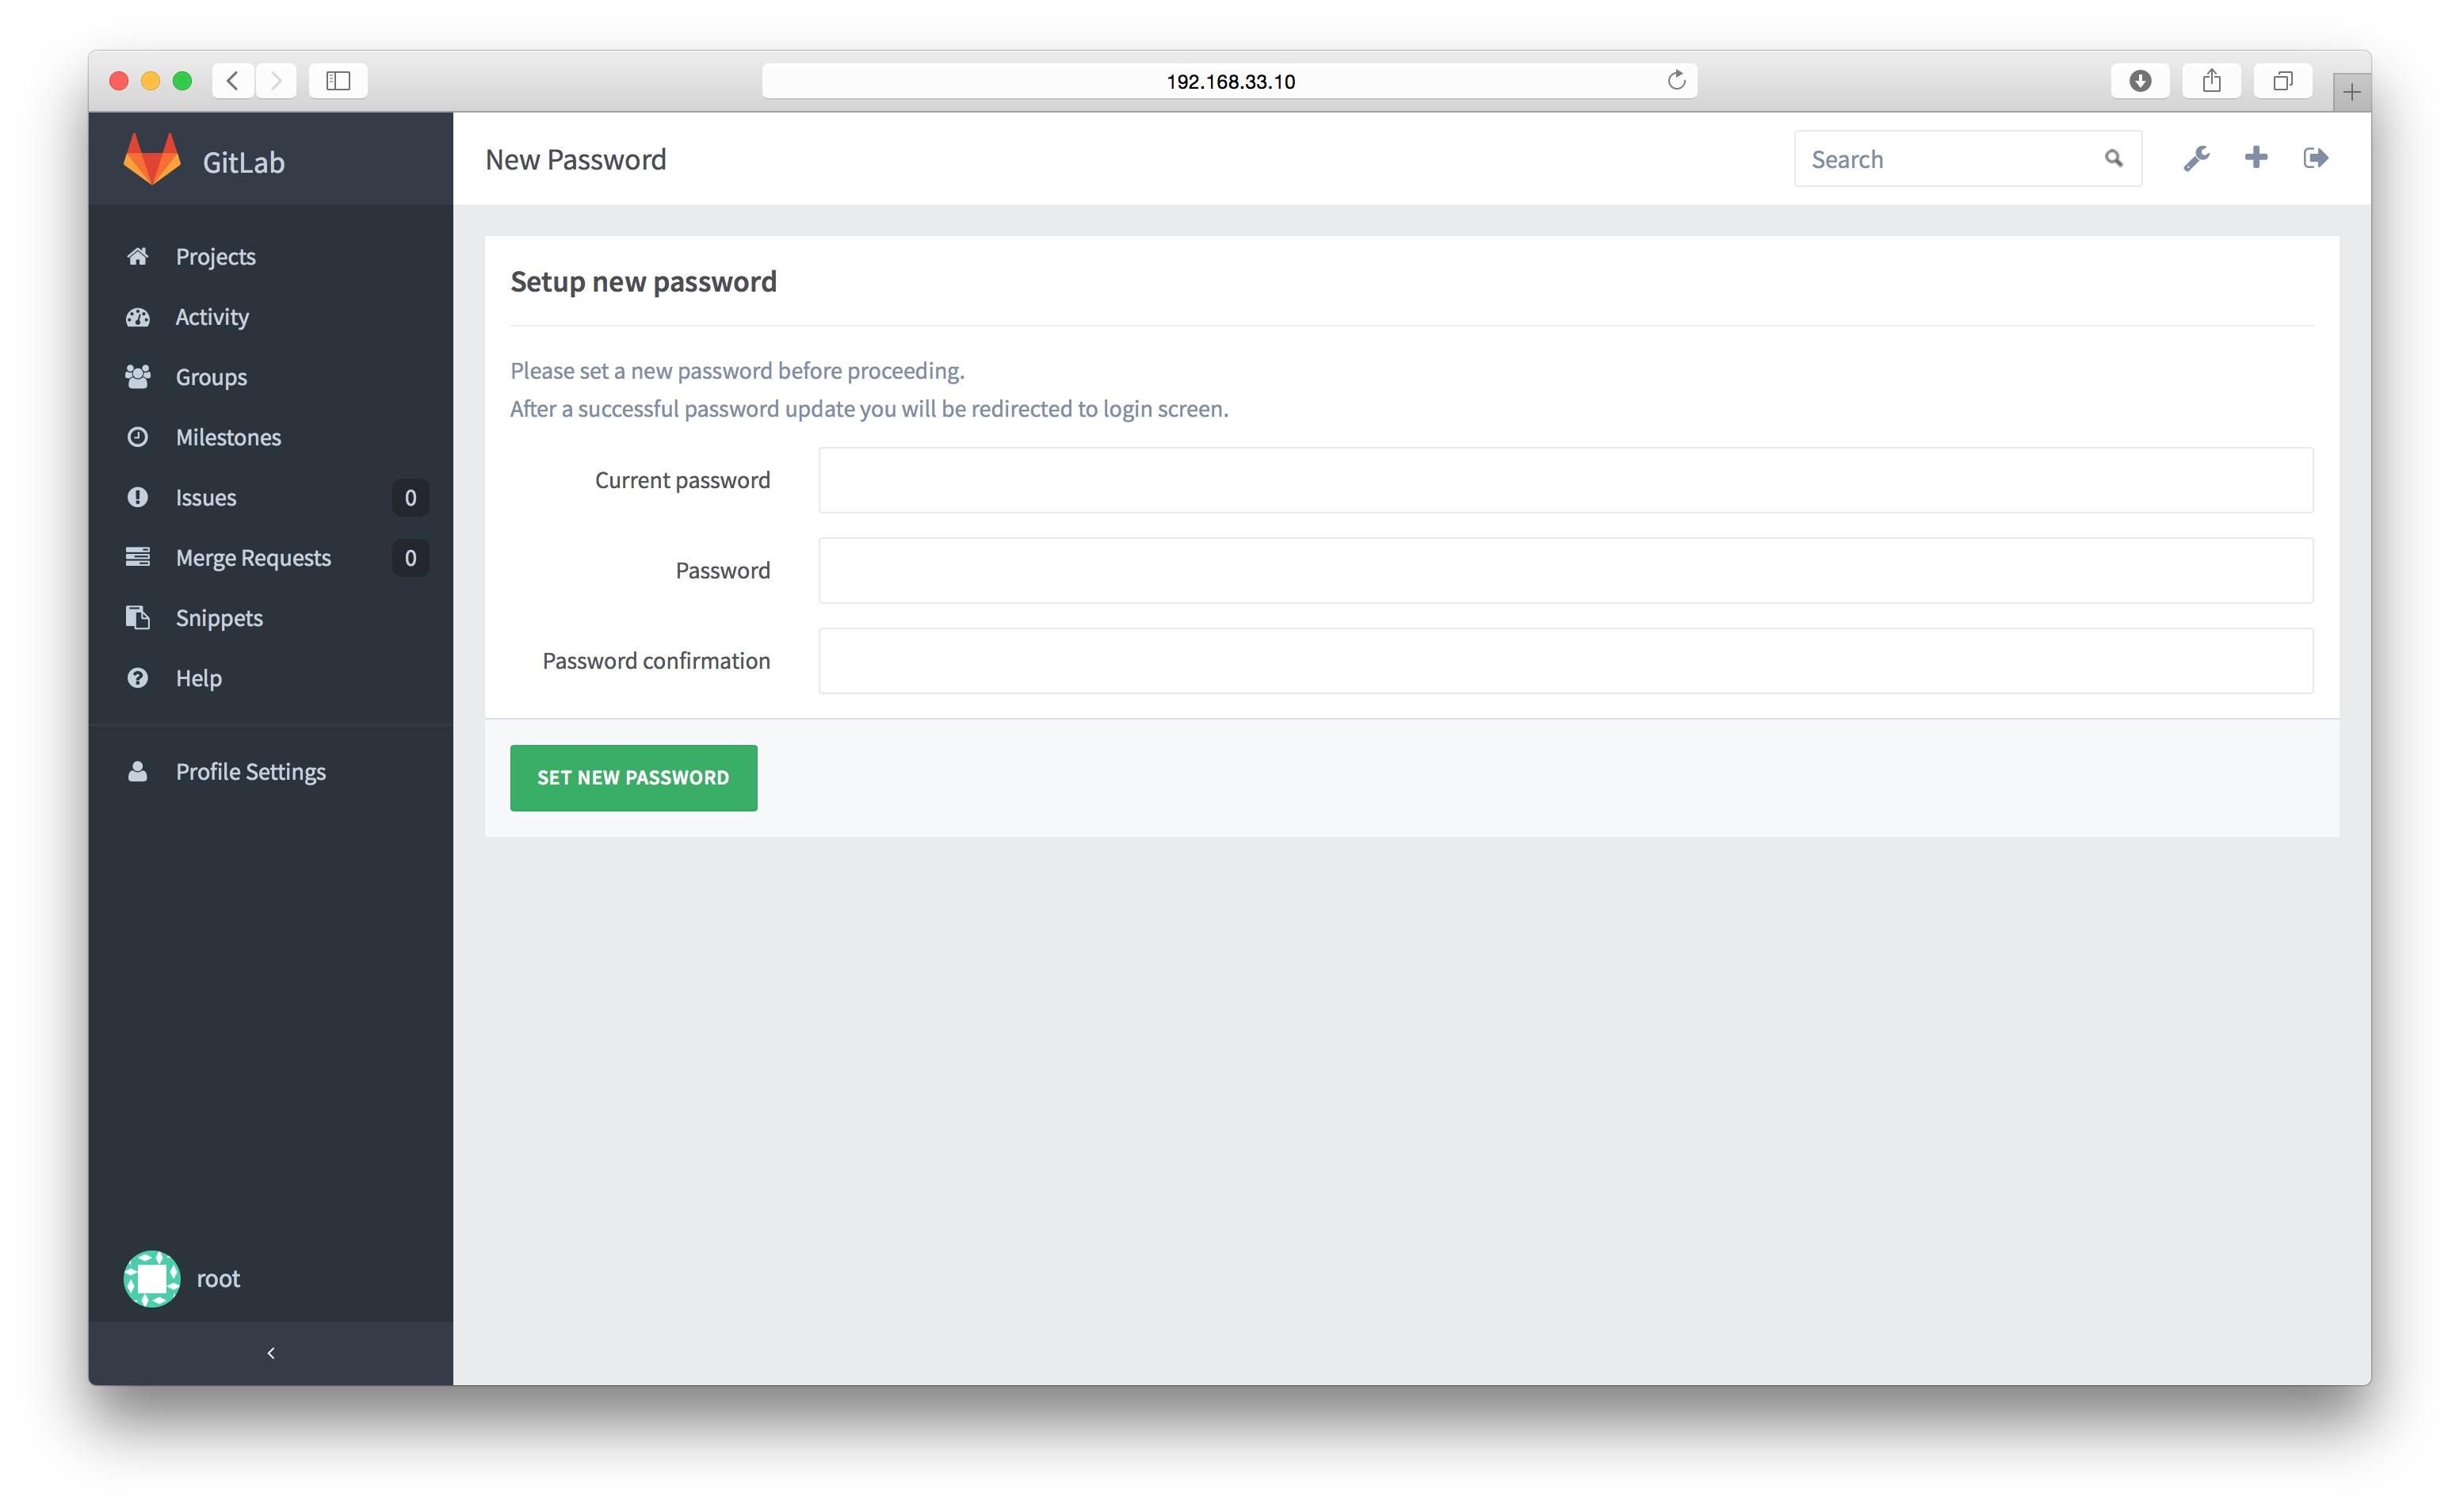 anynines_gitlab_setting_new_password